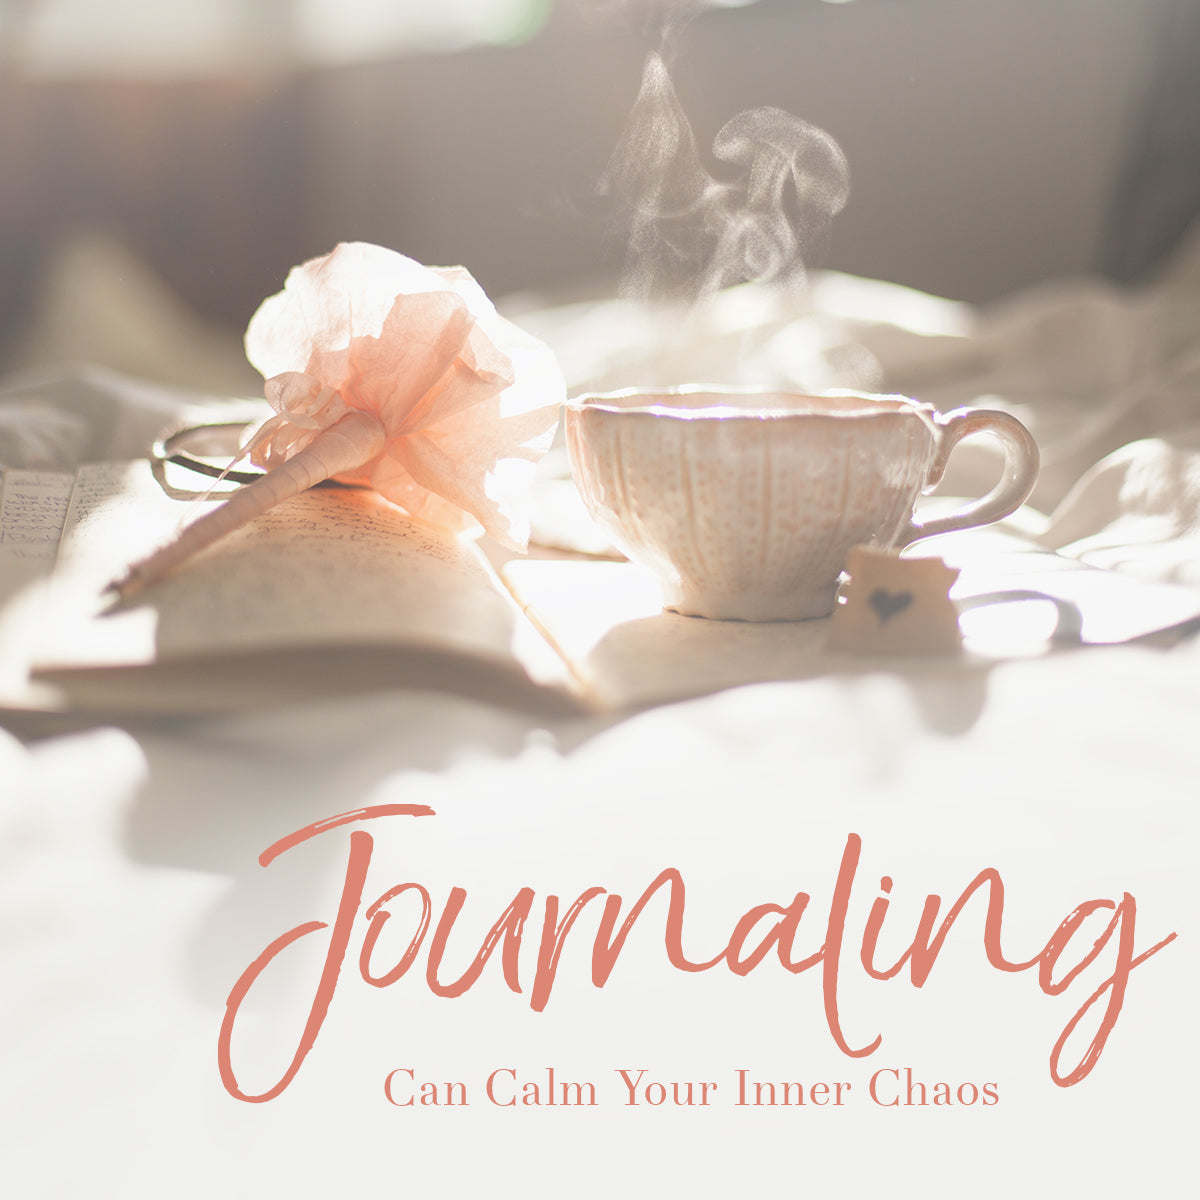 Journaling Can Calm your inner choas